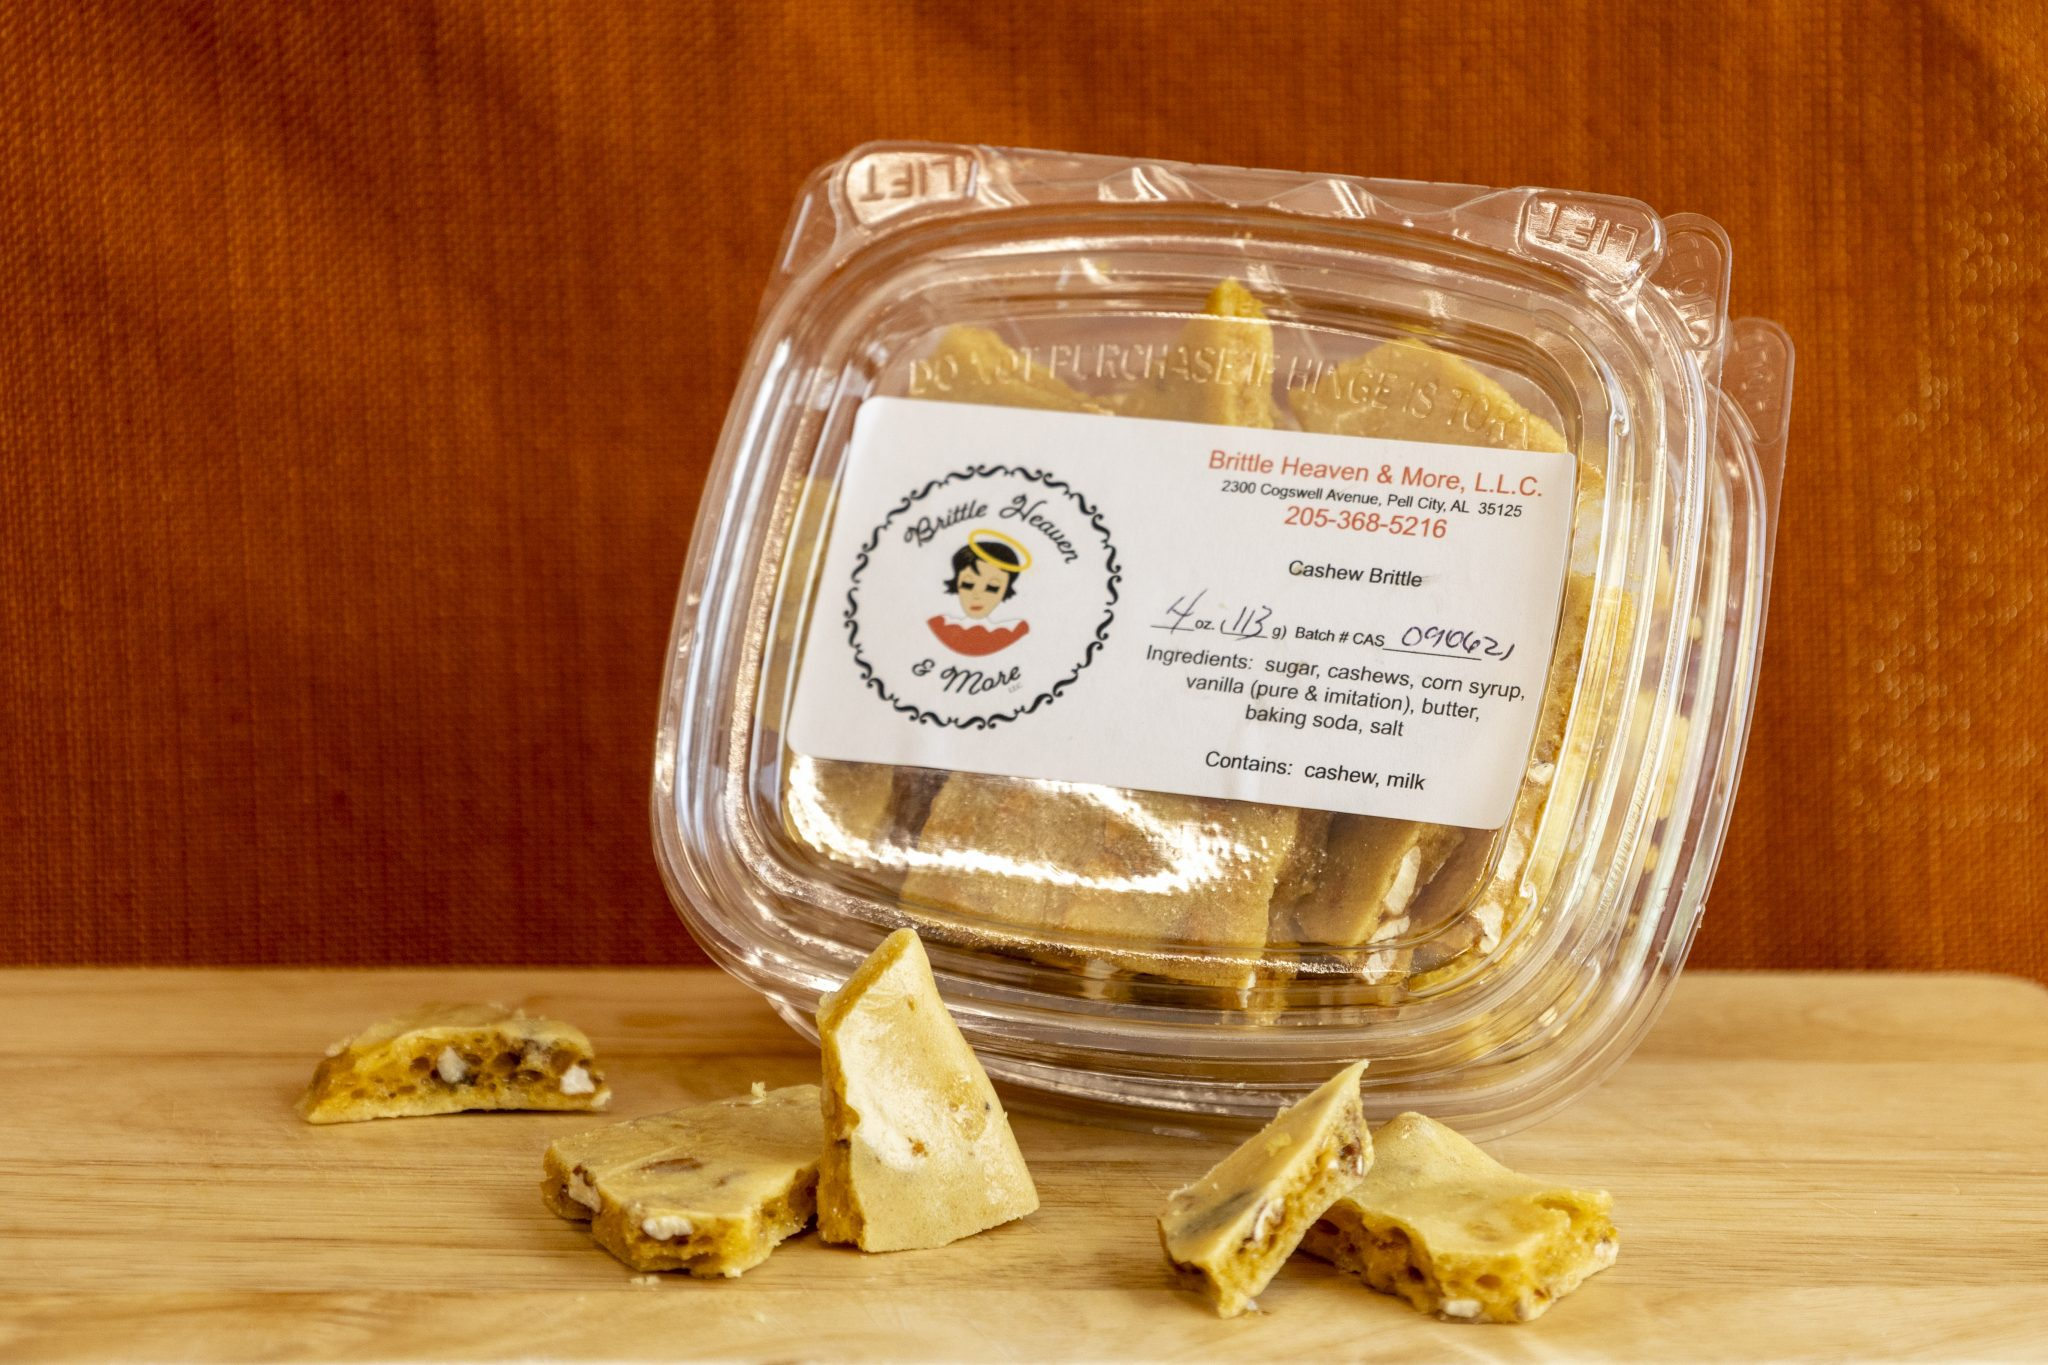 Brittle Heaven & More packaging